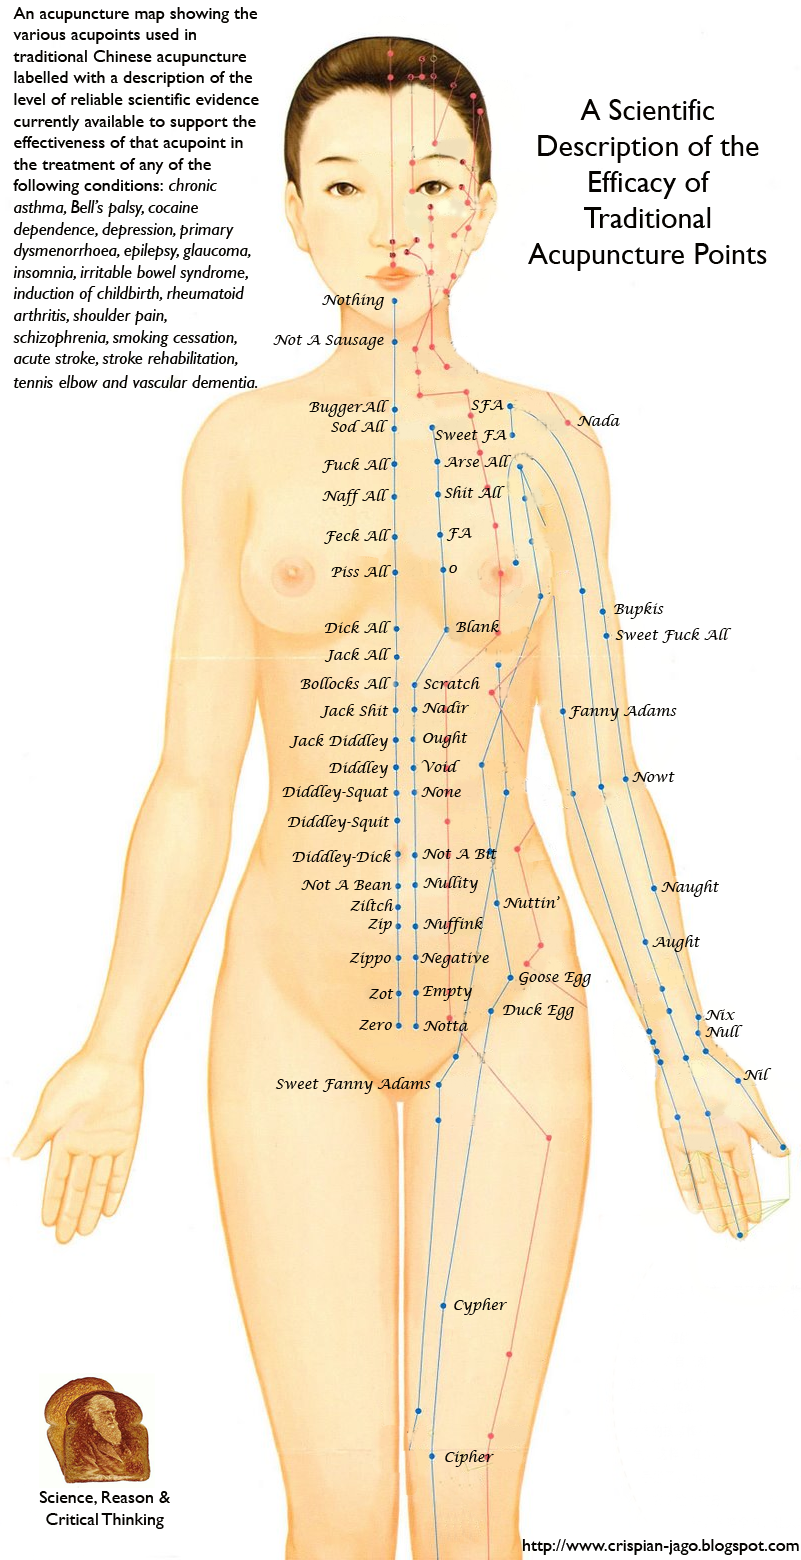 scientific description of the efficacy traditional acupuncture points benefits reflexology acupressure also rh pinterest